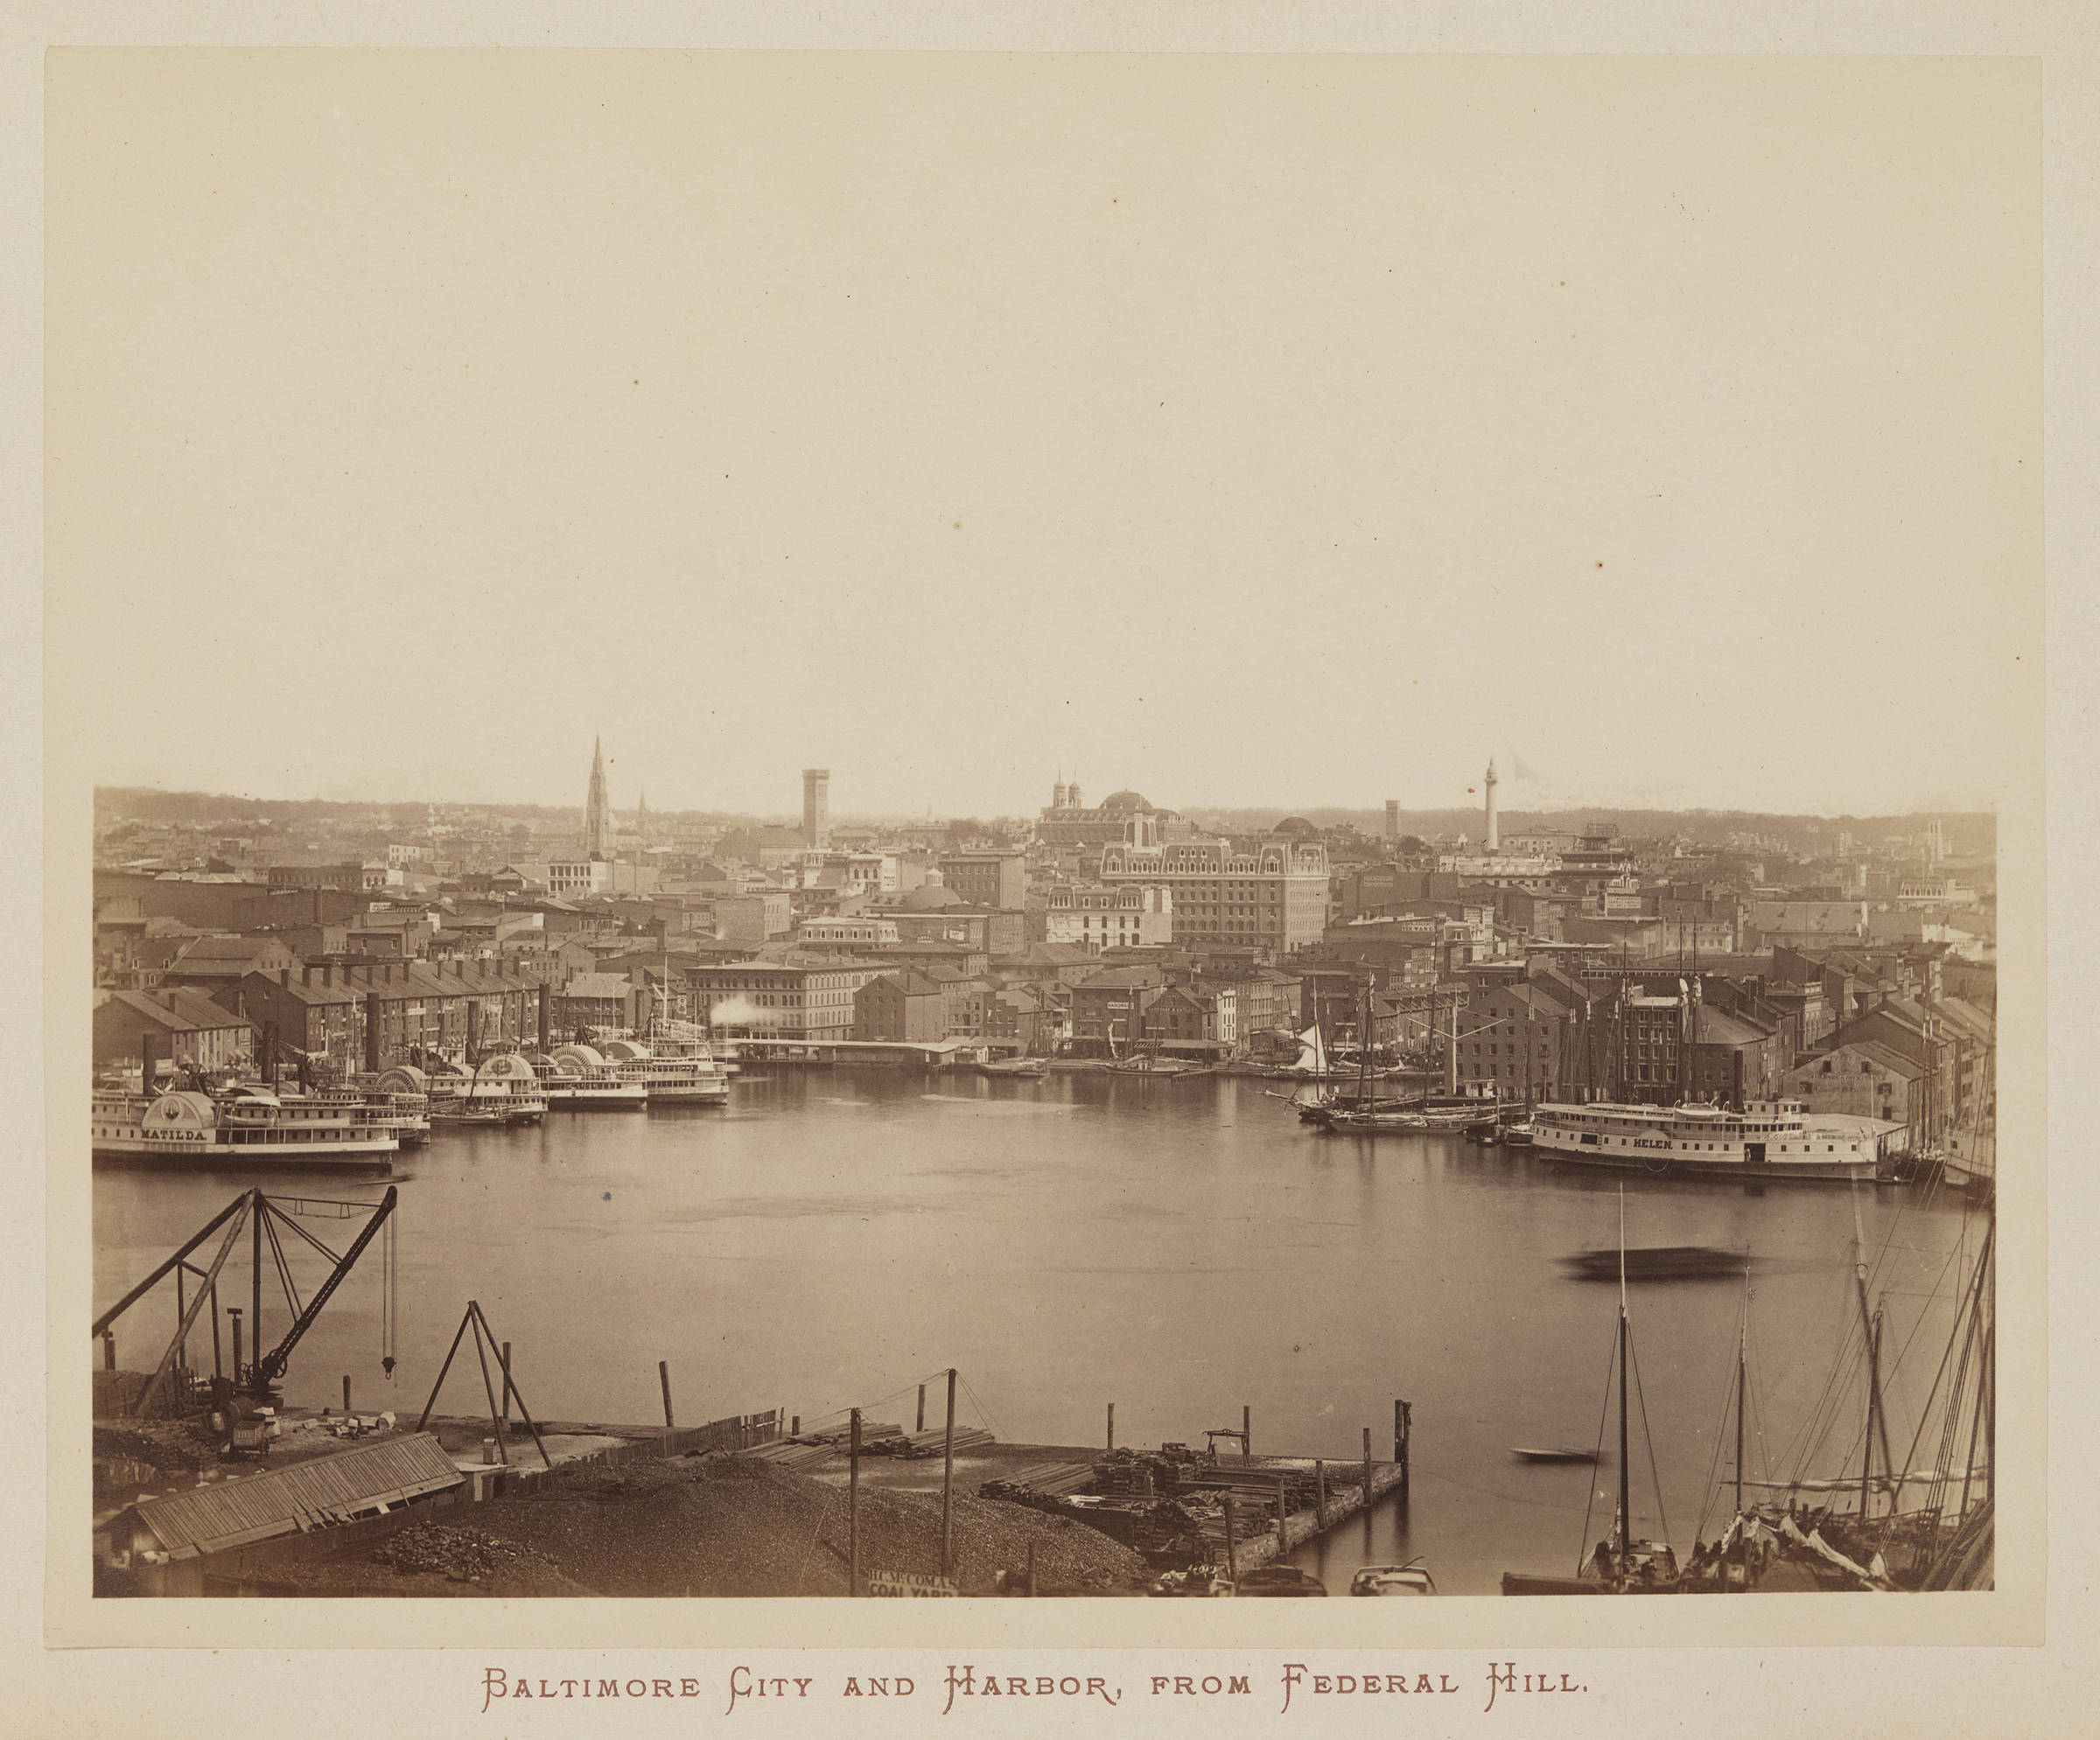 Baltimore Harbor Viewed From Federal Hill in 1872